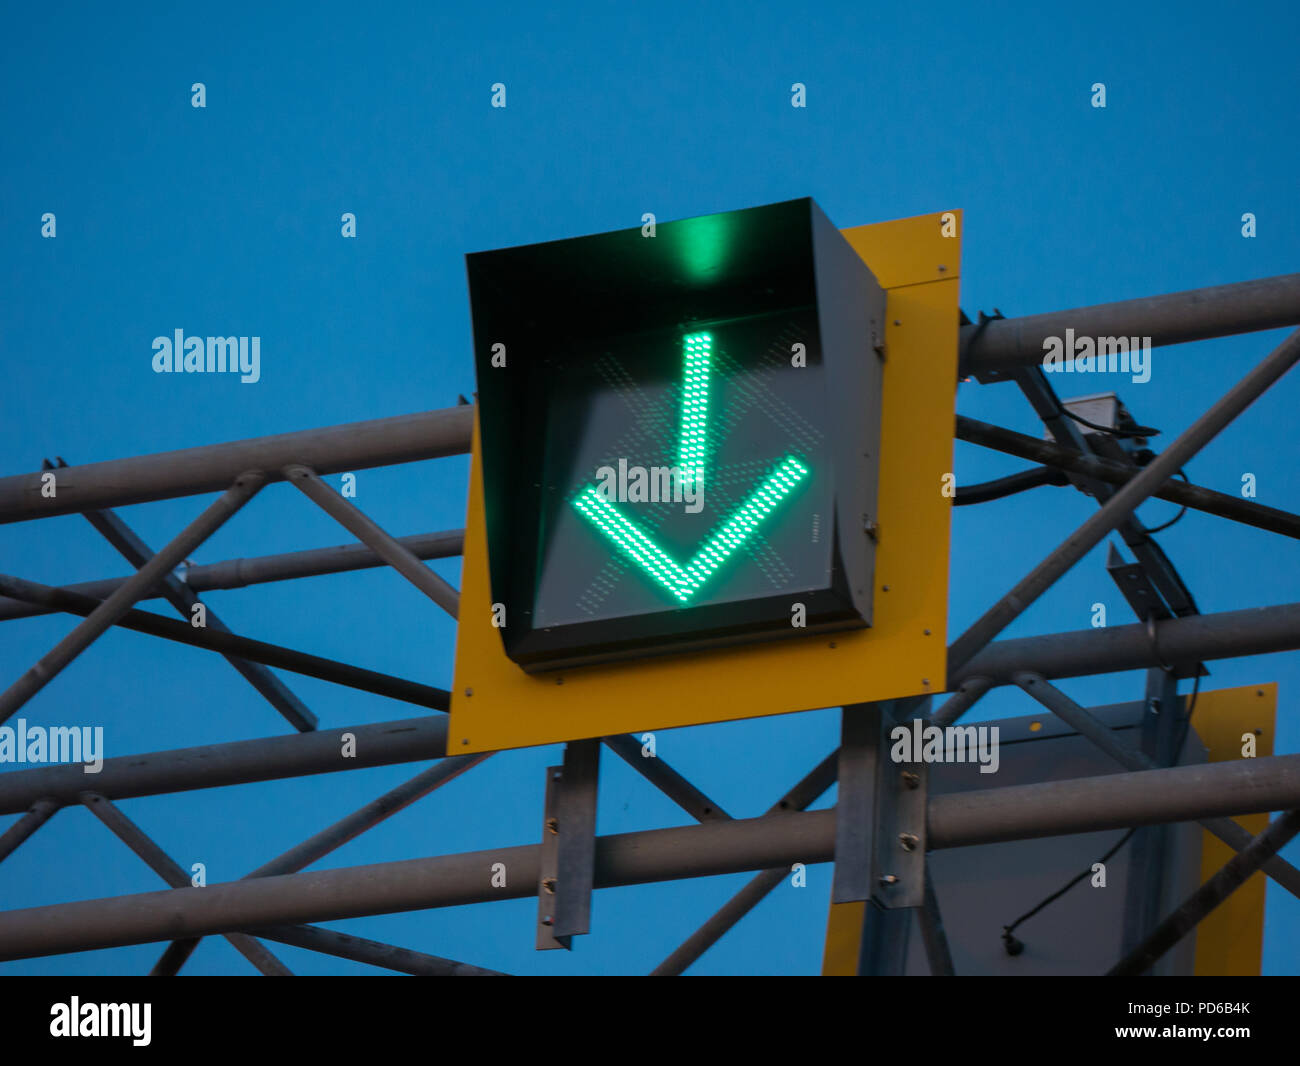 Green arrow on a bridge, Montreal, Canada - Stock Image